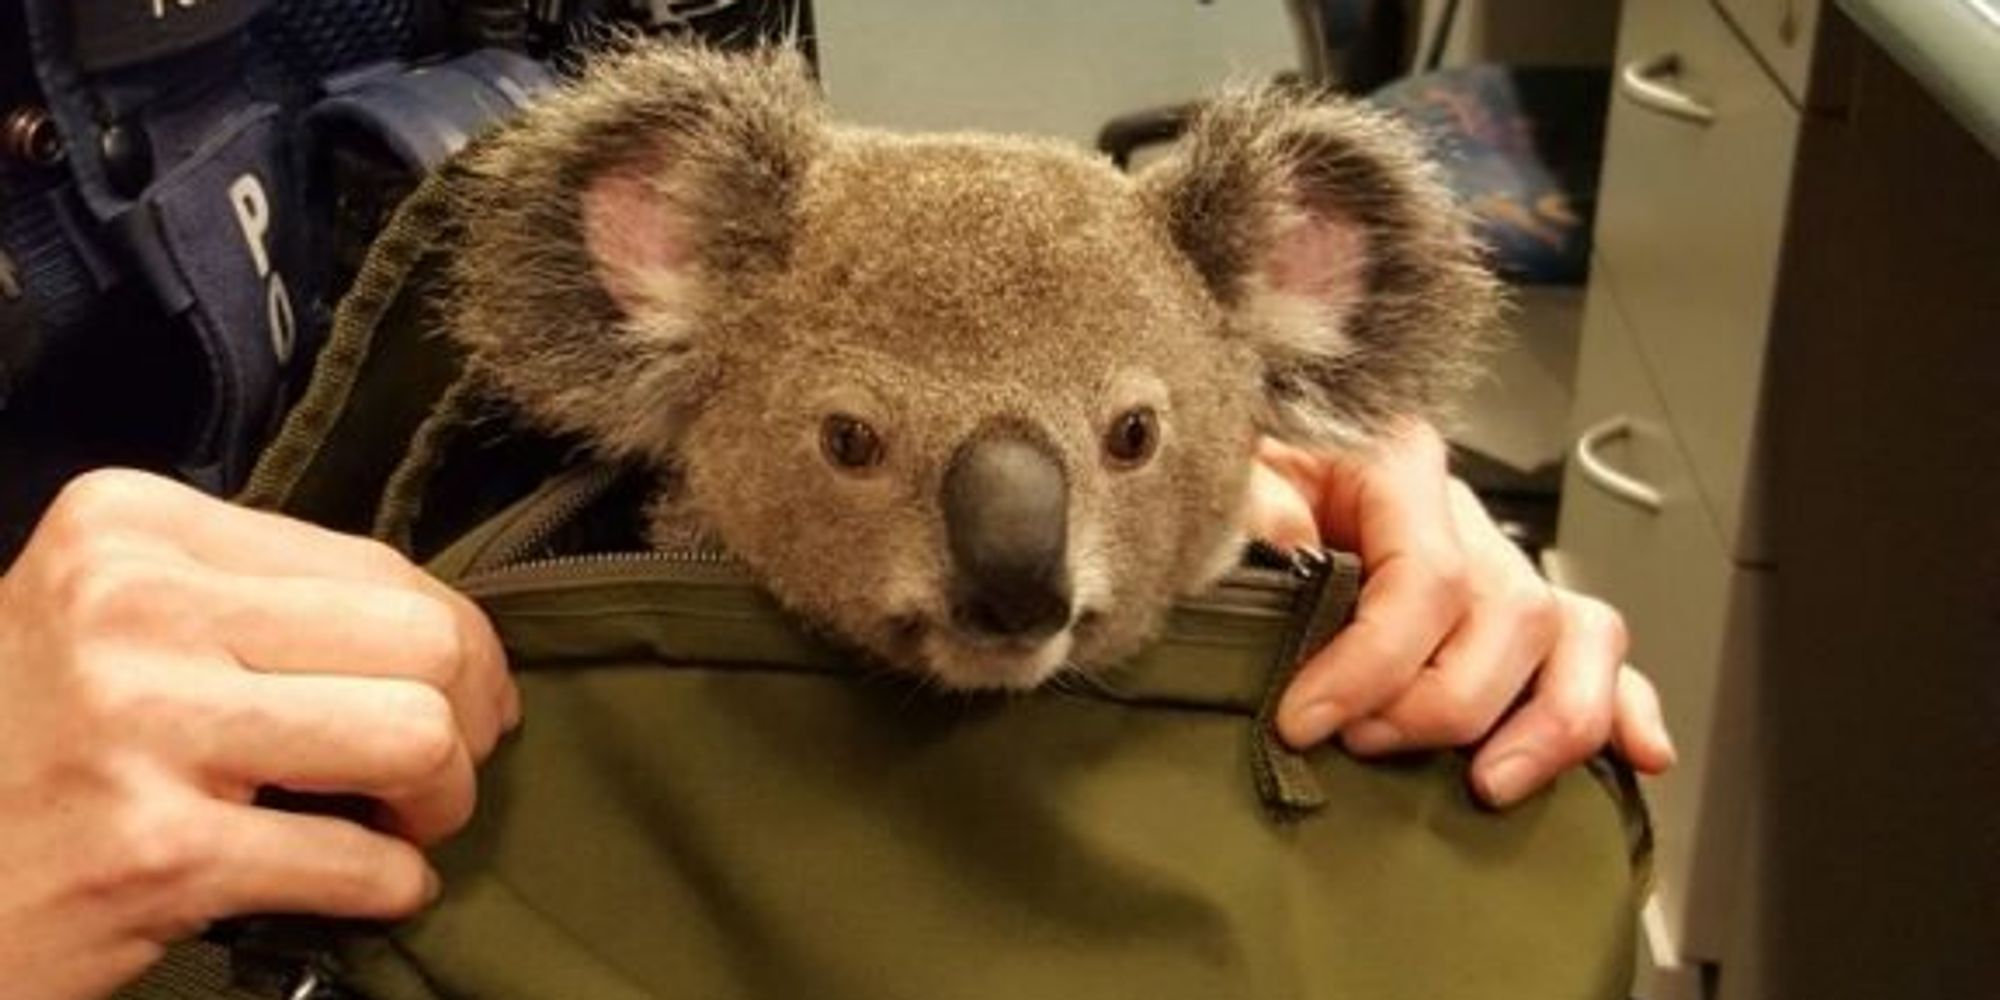 cops adorable koala inside wanted w s bag the cops adorable koala inside wanted w s bag the huffington post